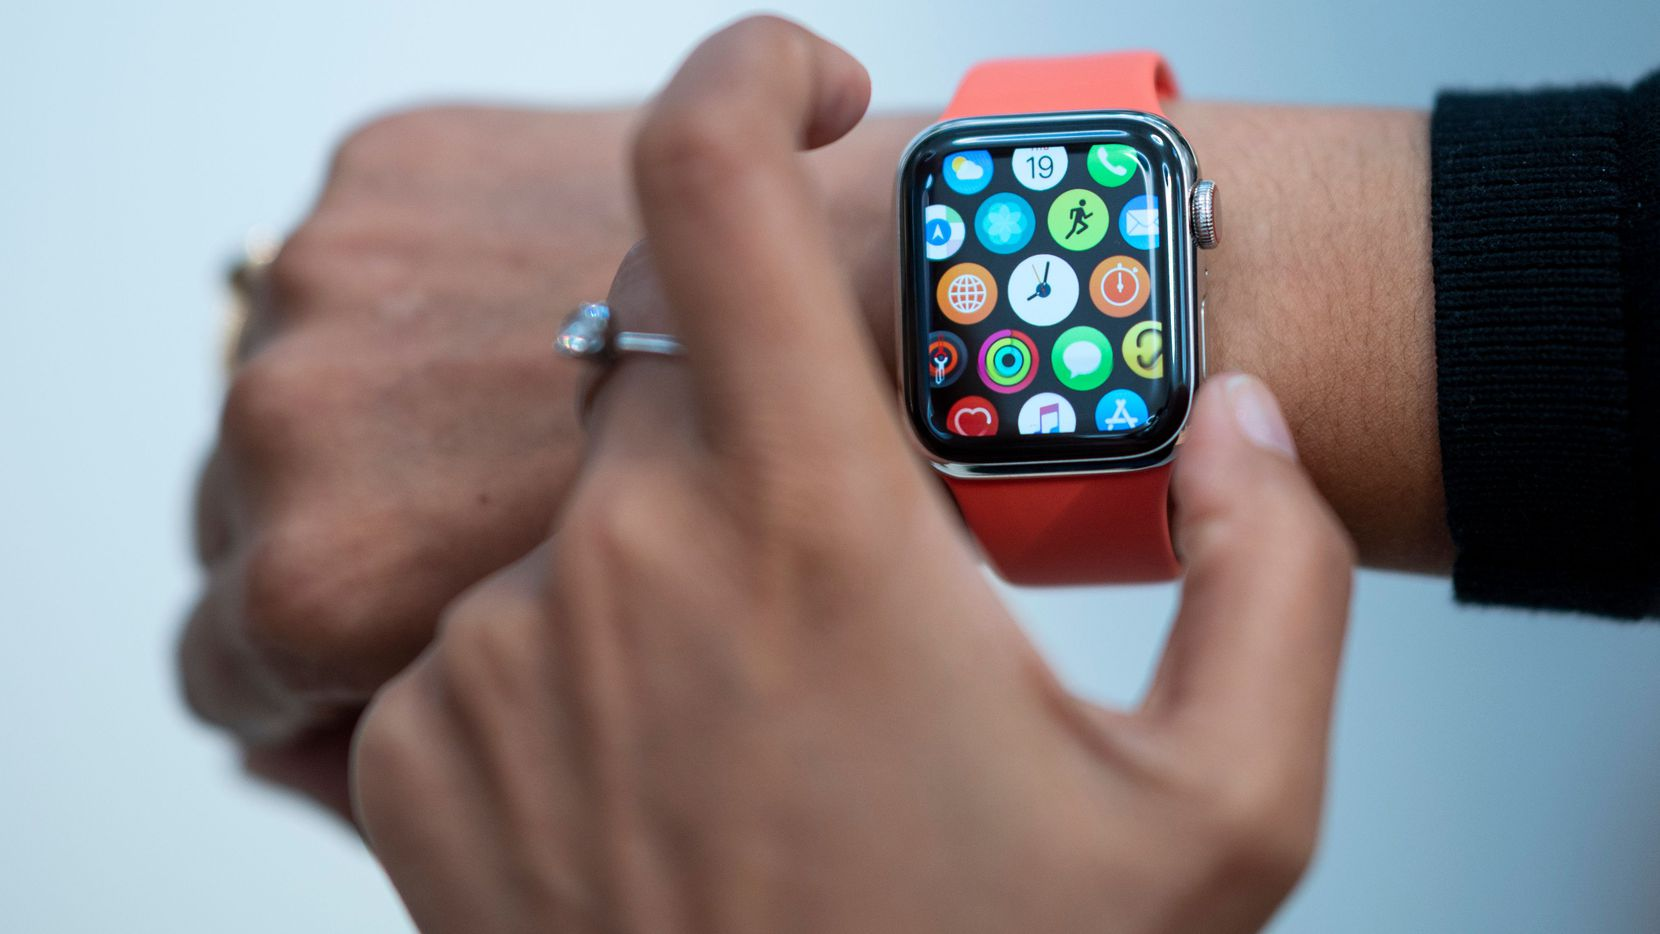 An Apple Watch keeps track of more than time, but should we count on it for medical alerts?